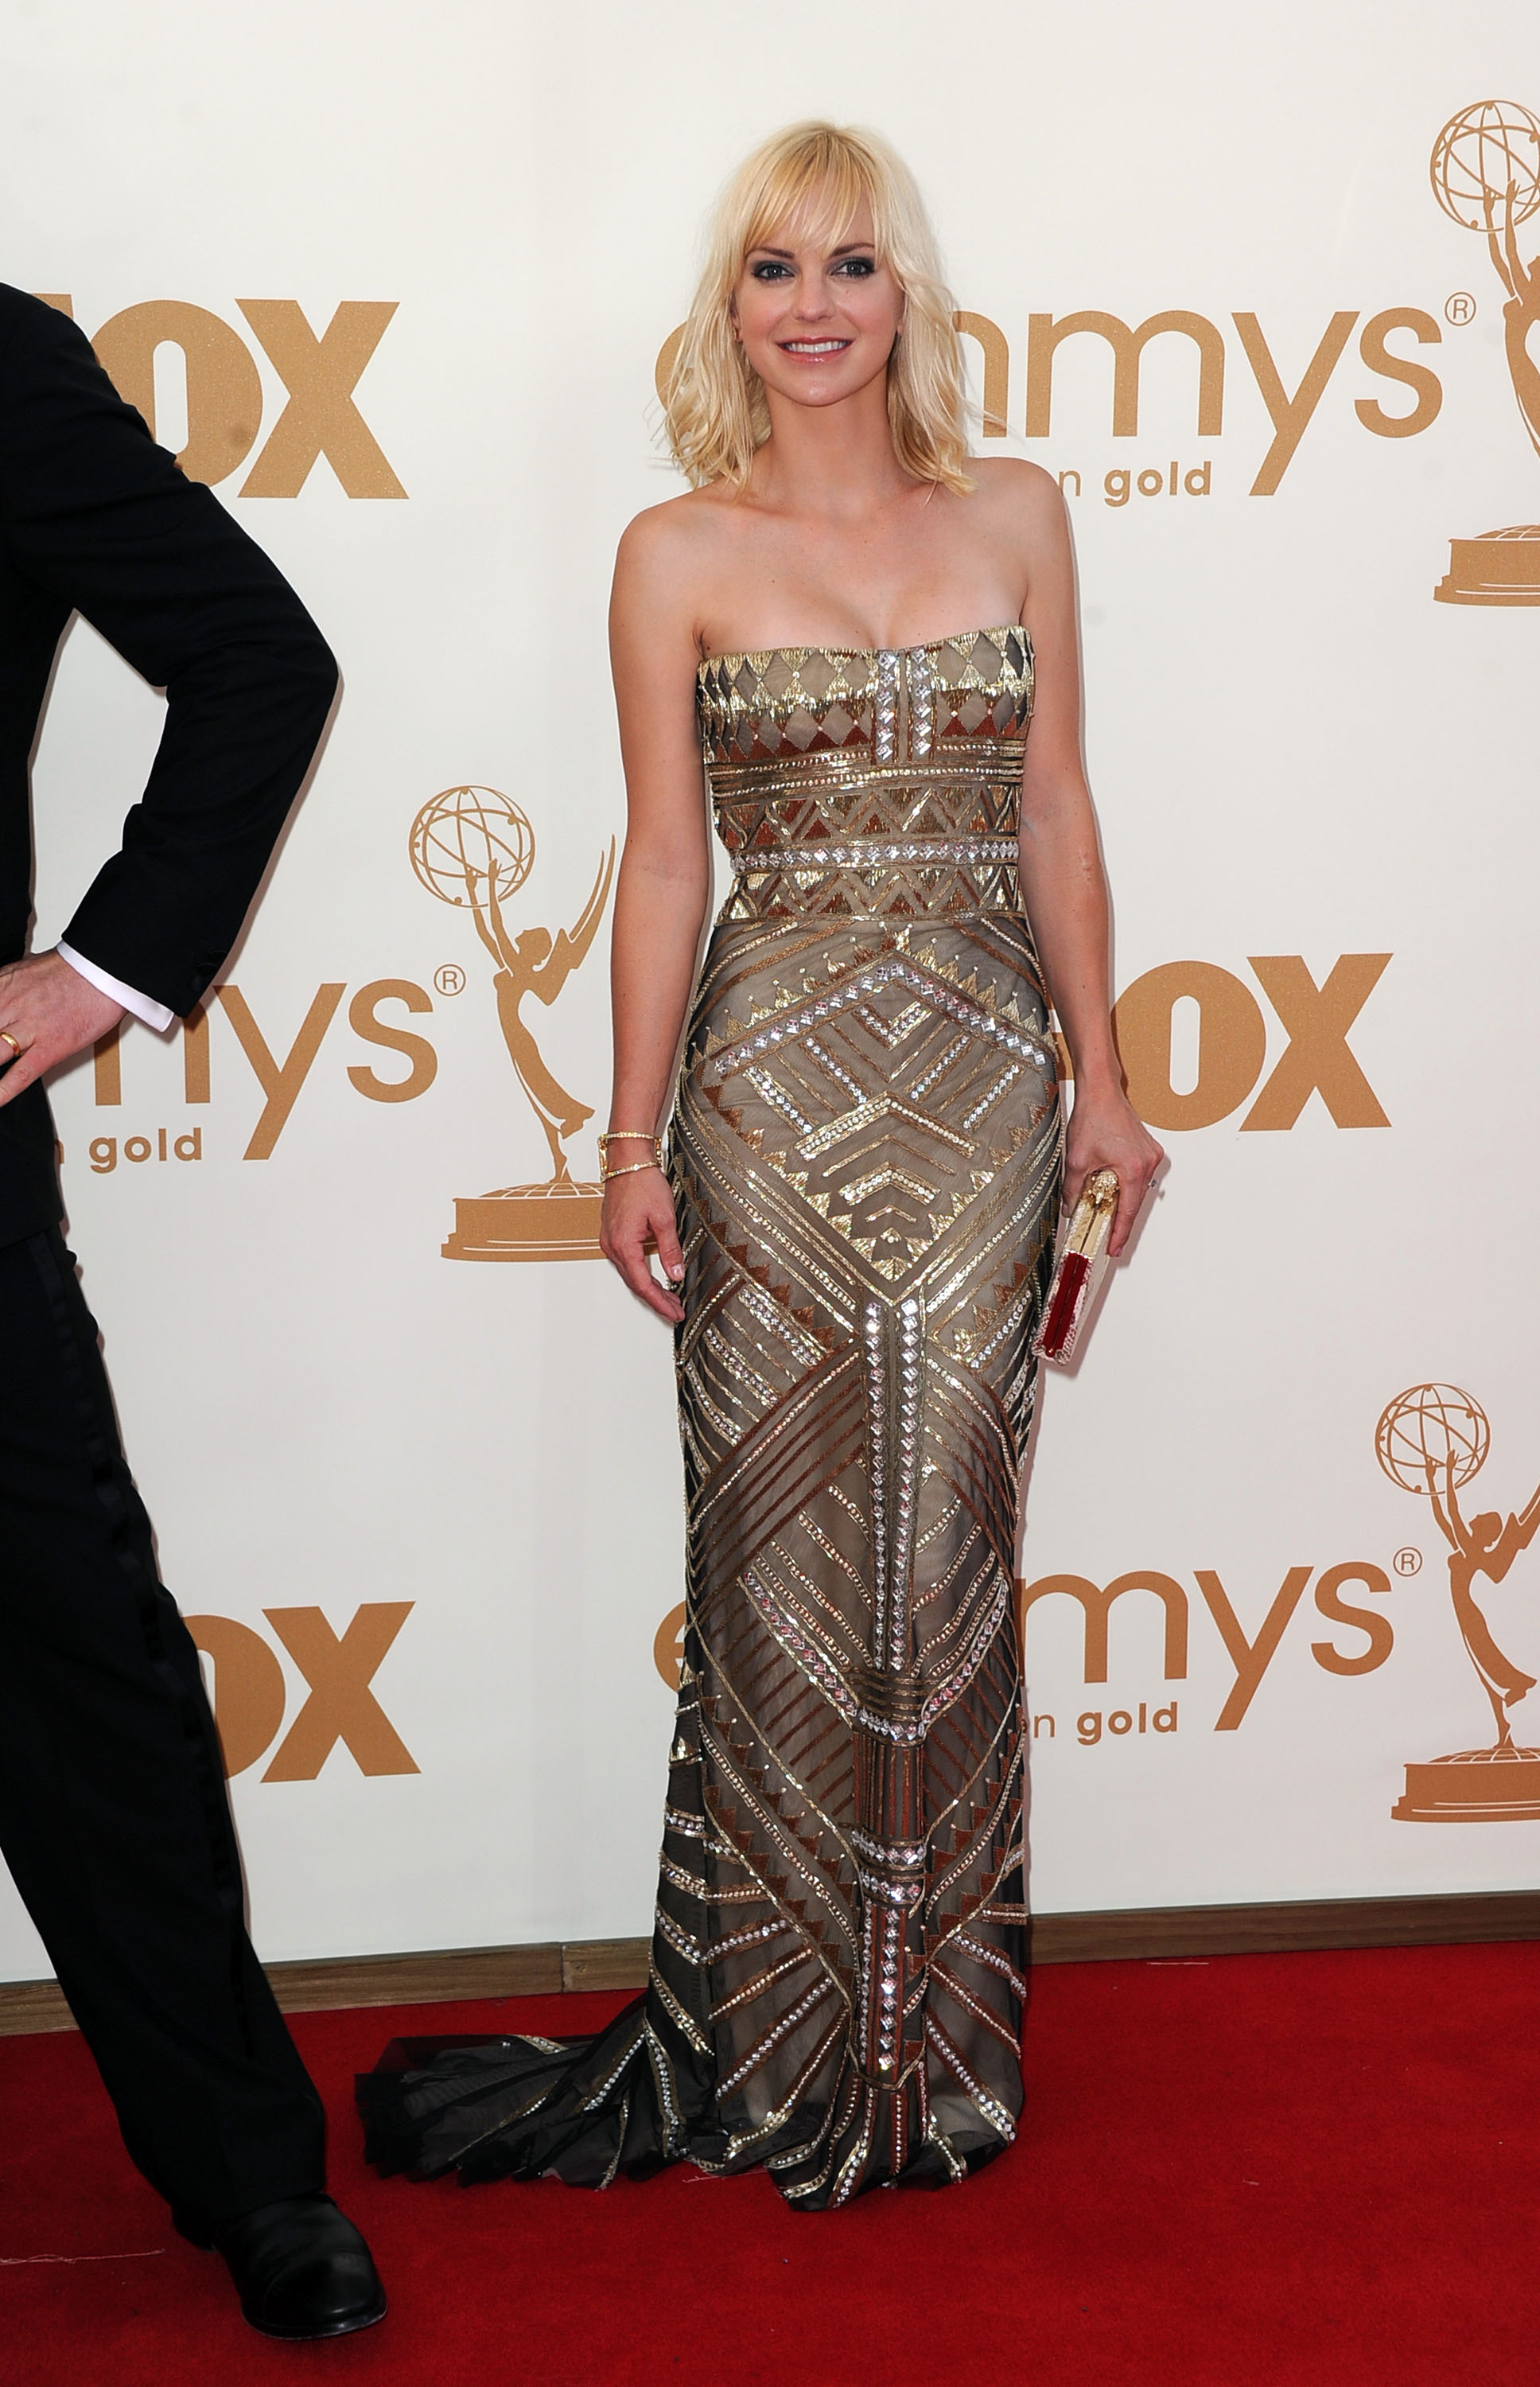 Anna Faris at the Emmys.